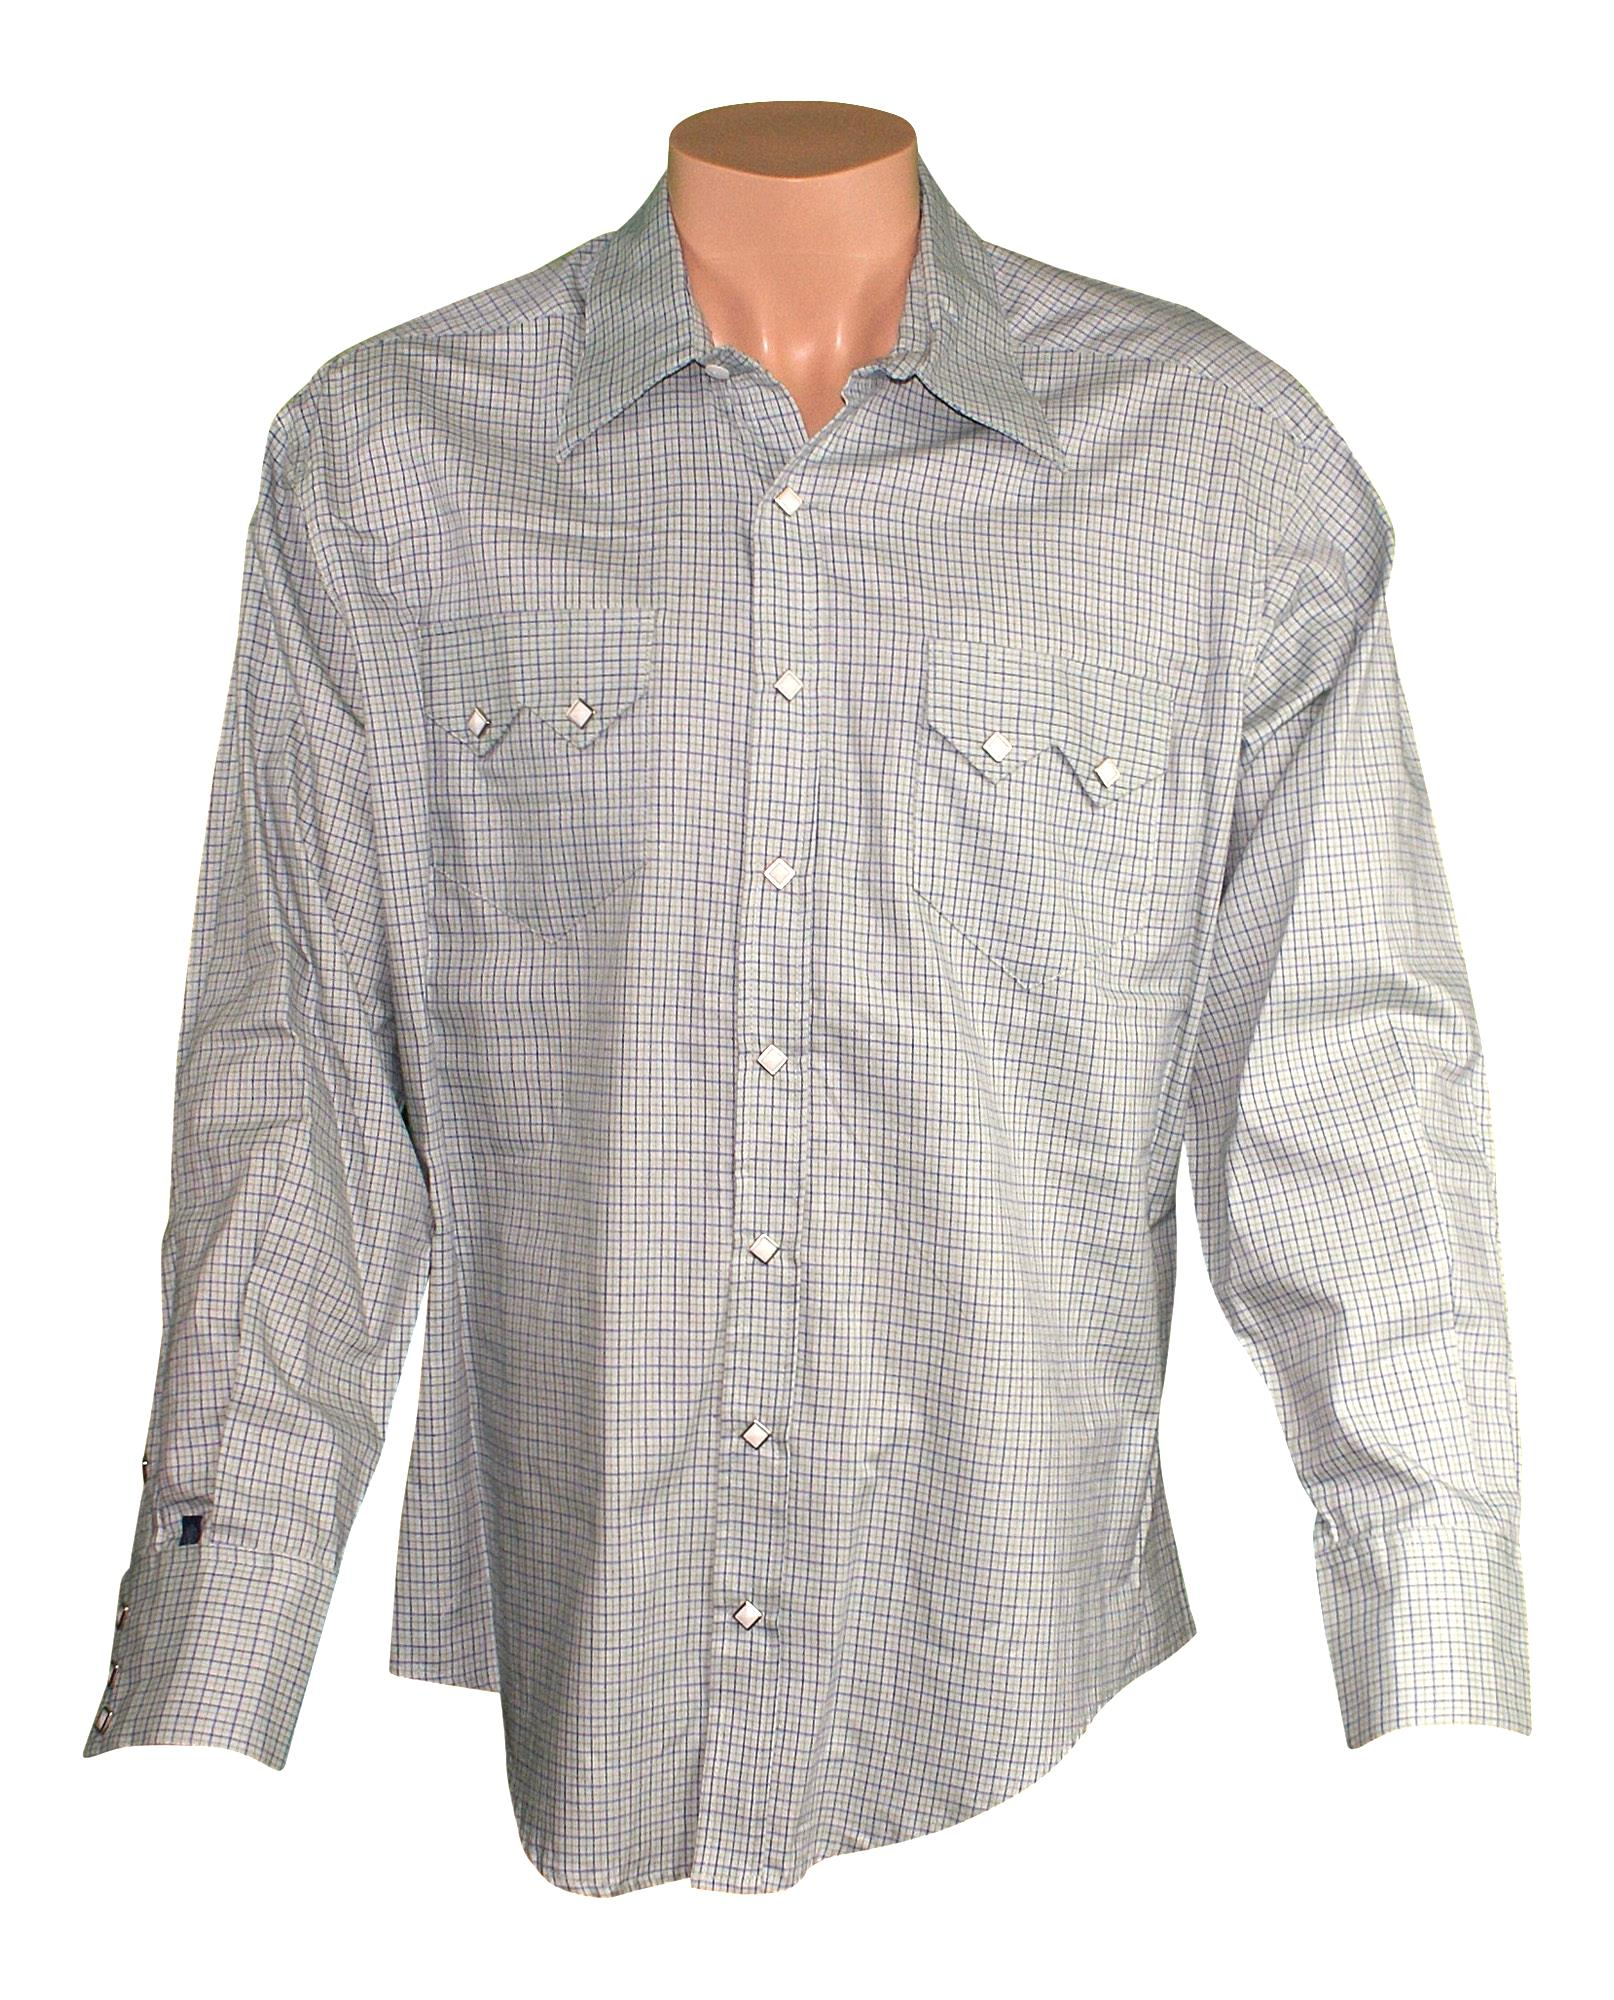 Find great deals on eBay for western shirt made in usa. Shop with confidence.